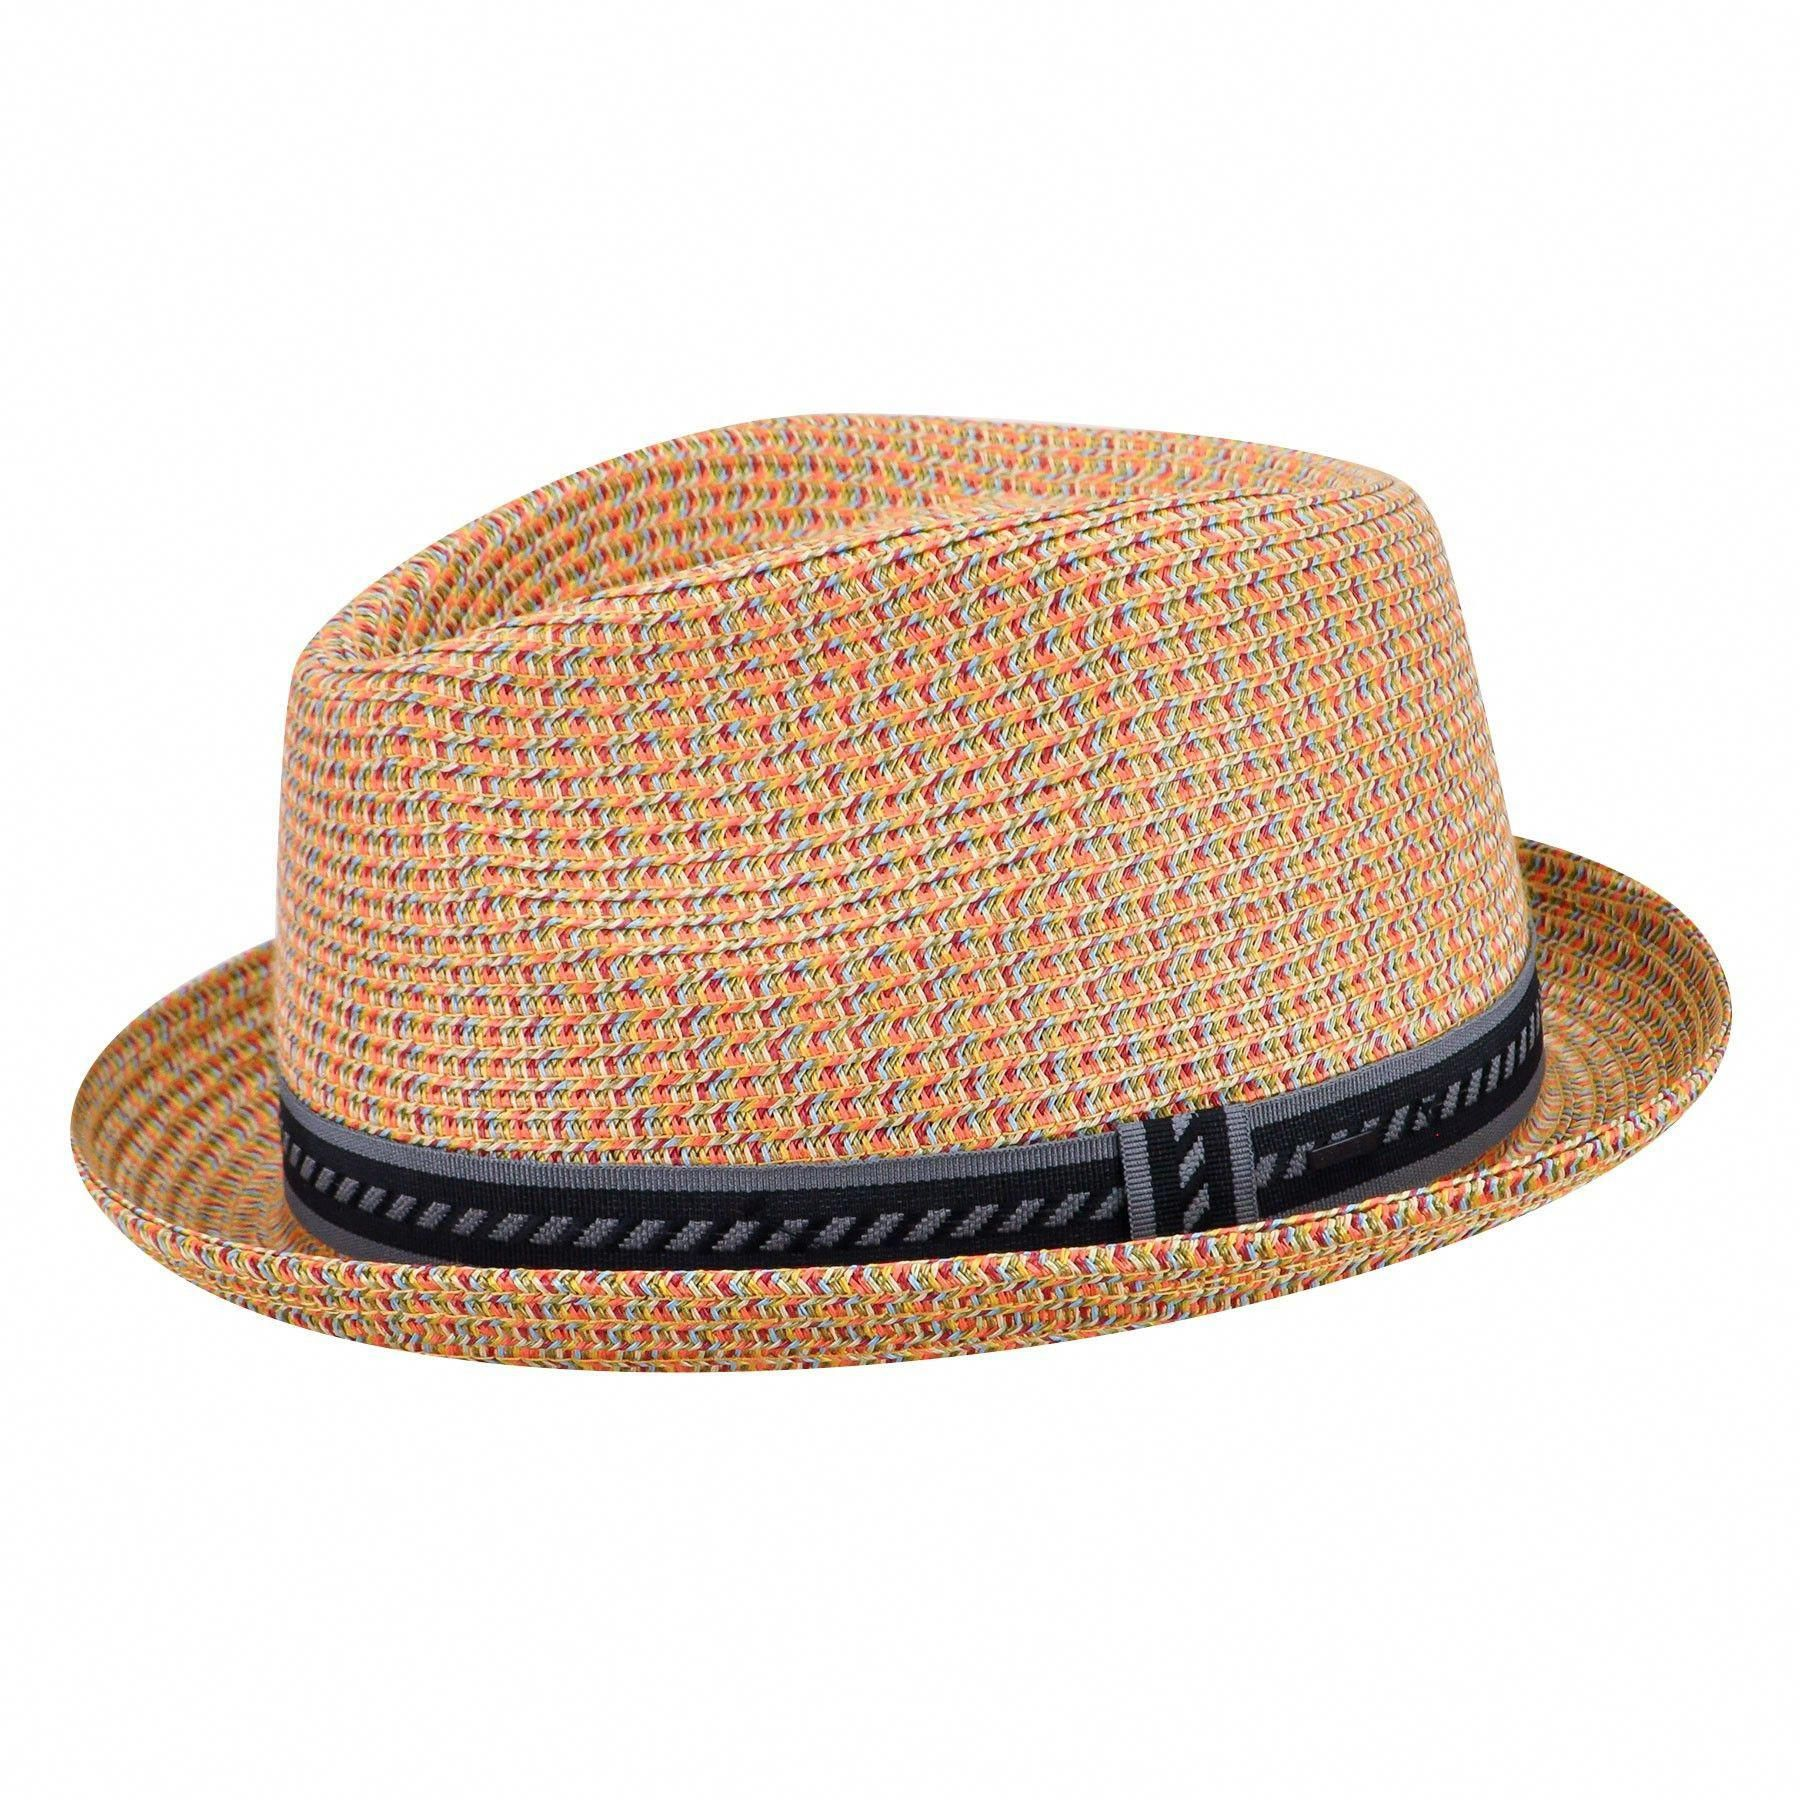 The Bailey Mannes has 2 inch brim with a distinct summer look. The unique  coloring and patterns gives this hat the ability to stand out from the rest  of ... 149611f0893